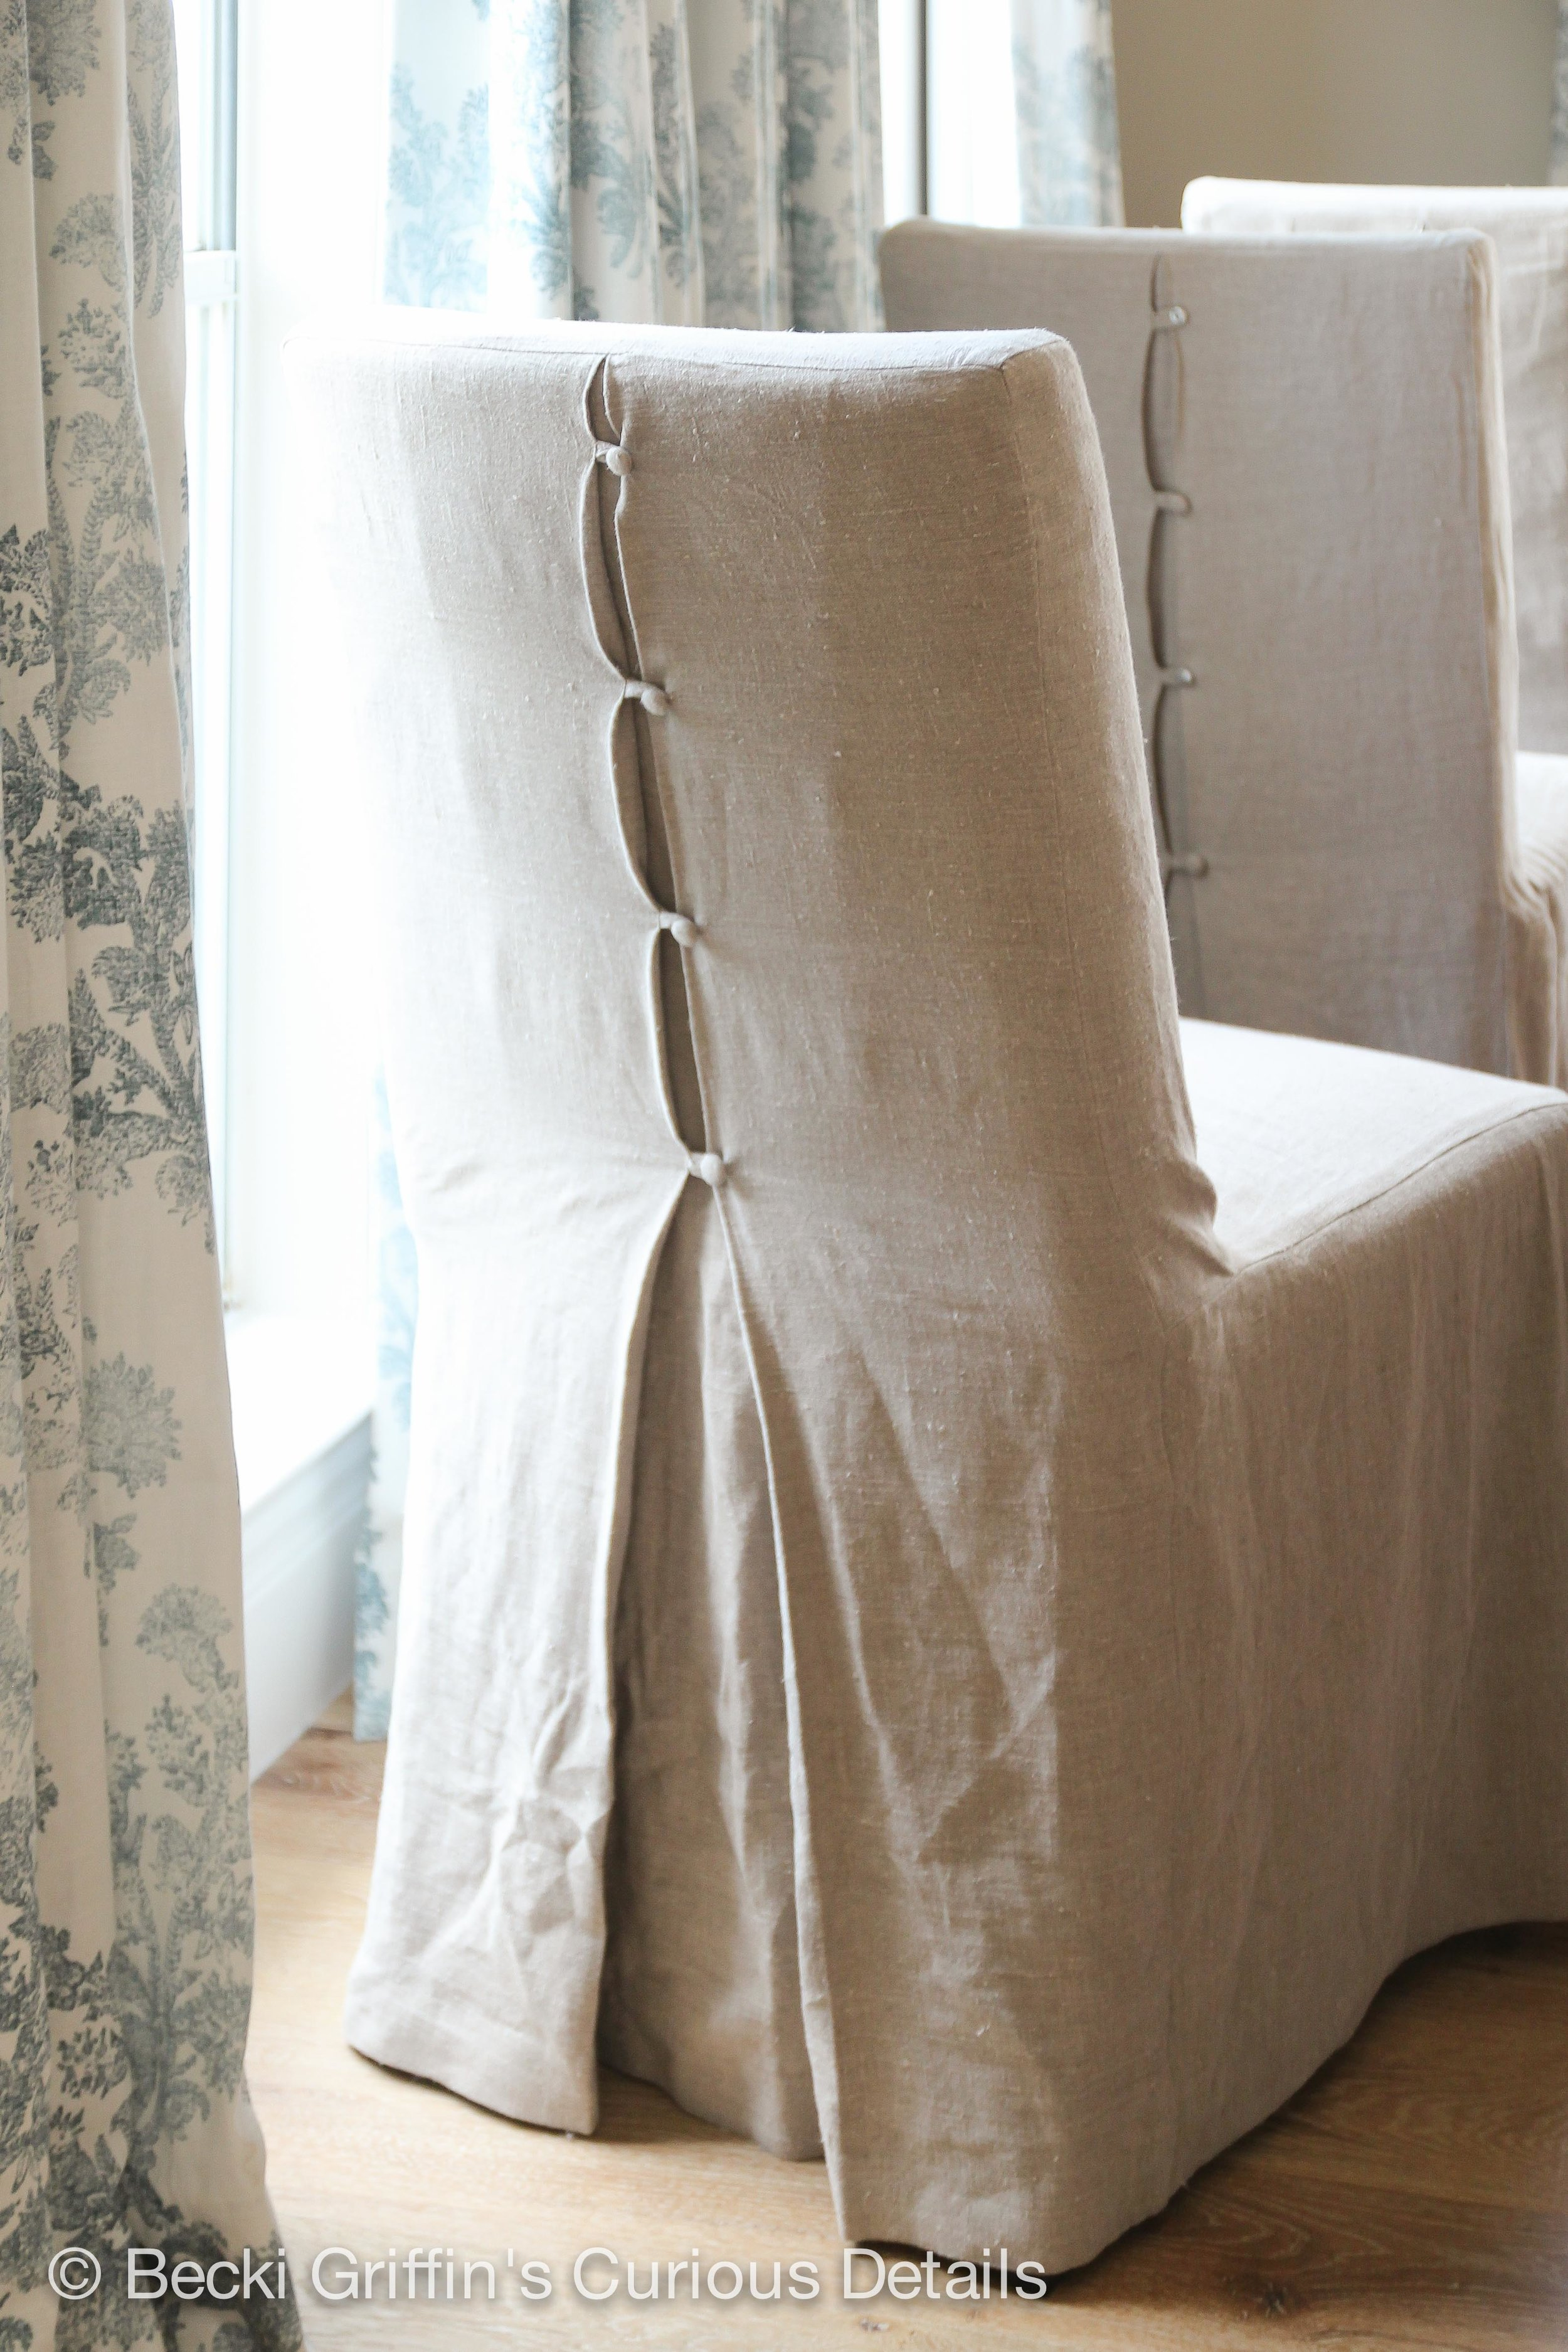 Beautiful details and fabric in these custom slipcovers by  LS Slipcovers  topping off the basic  Henriksdal  chair from Ikea.